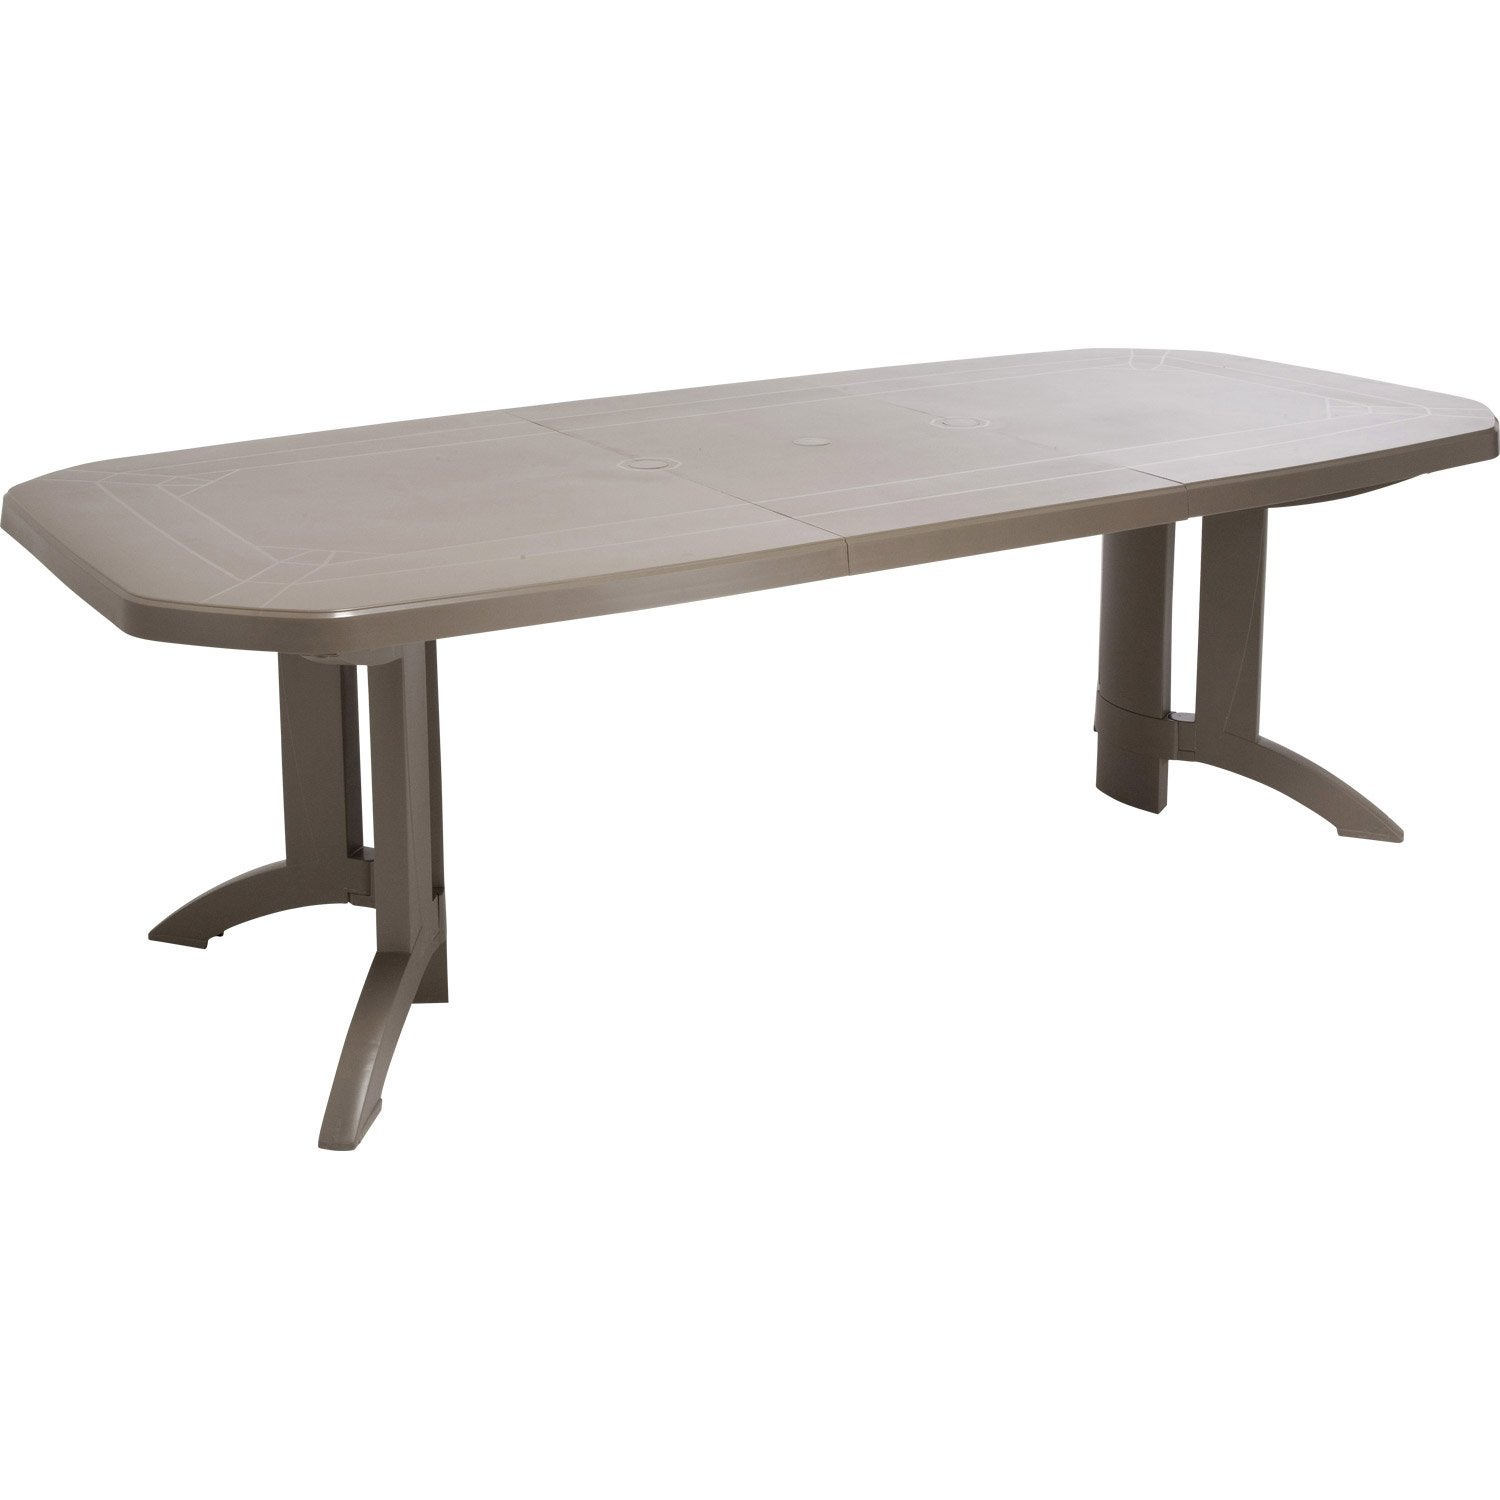 Salon de jardin grosfillex leroy merlin - Leroy merlin table jardin ...